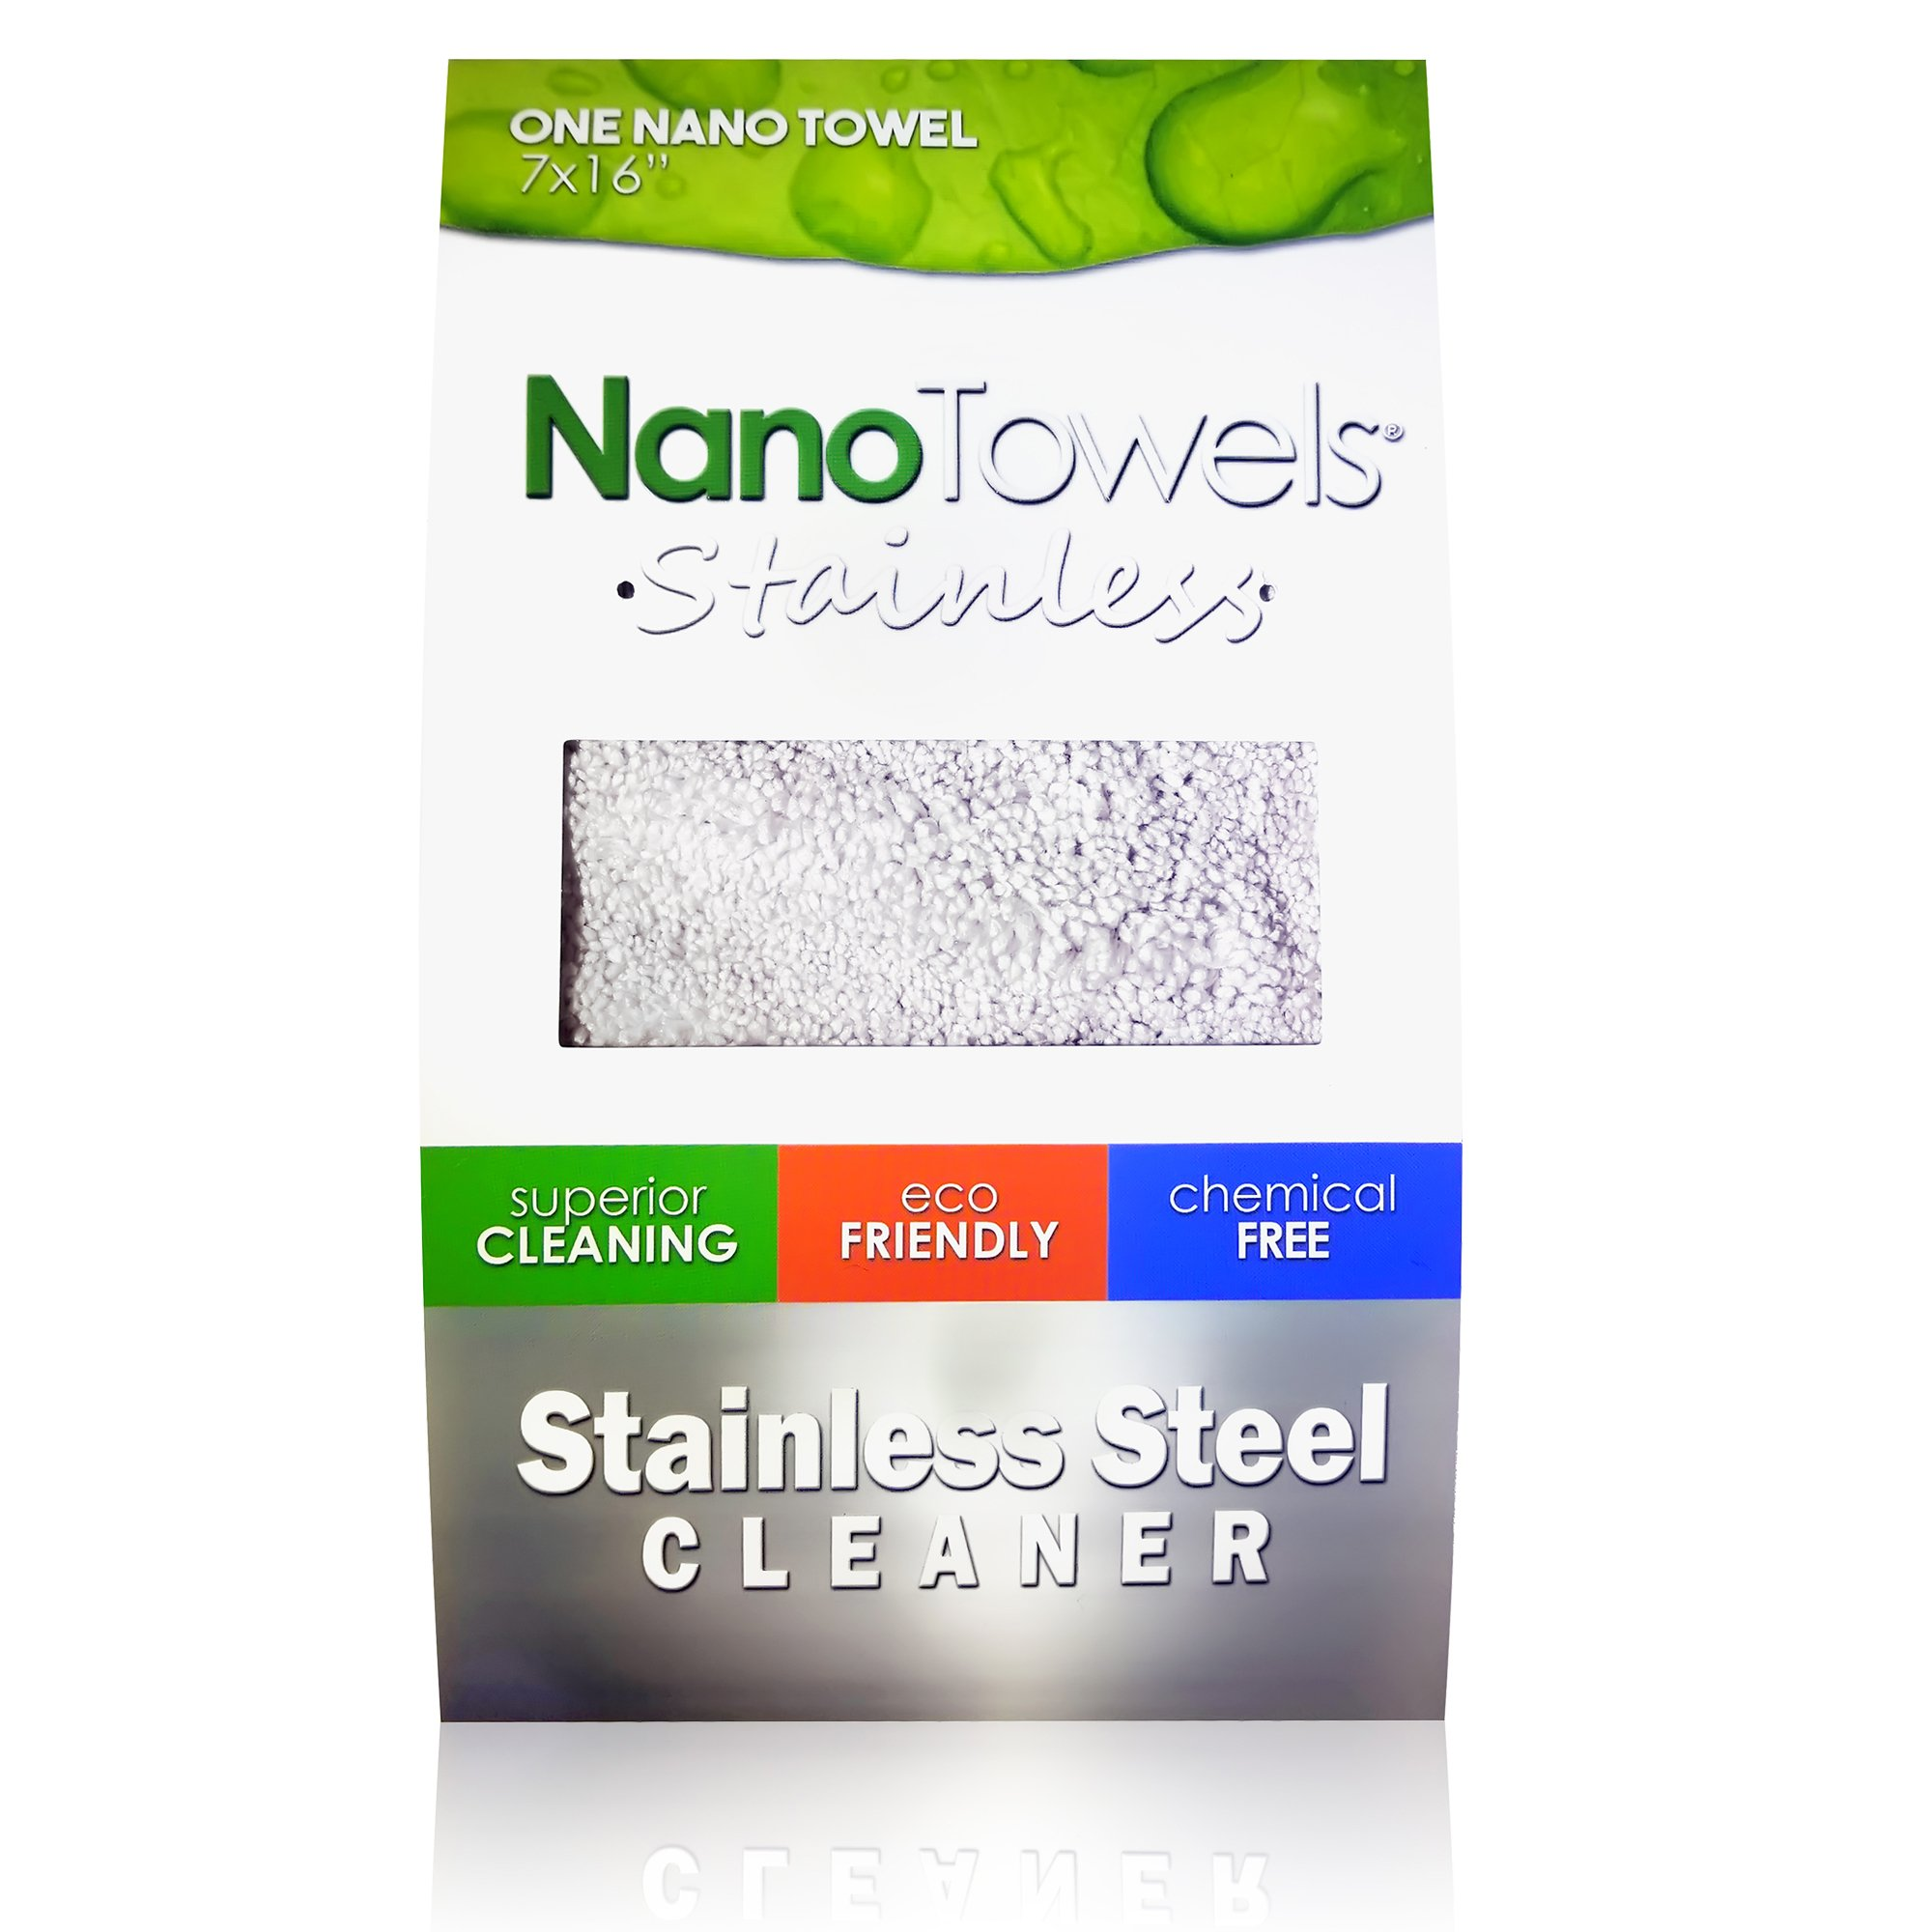 Nano Towels Stainless Steel Cleaner - Chemical Free Cleaning Towel